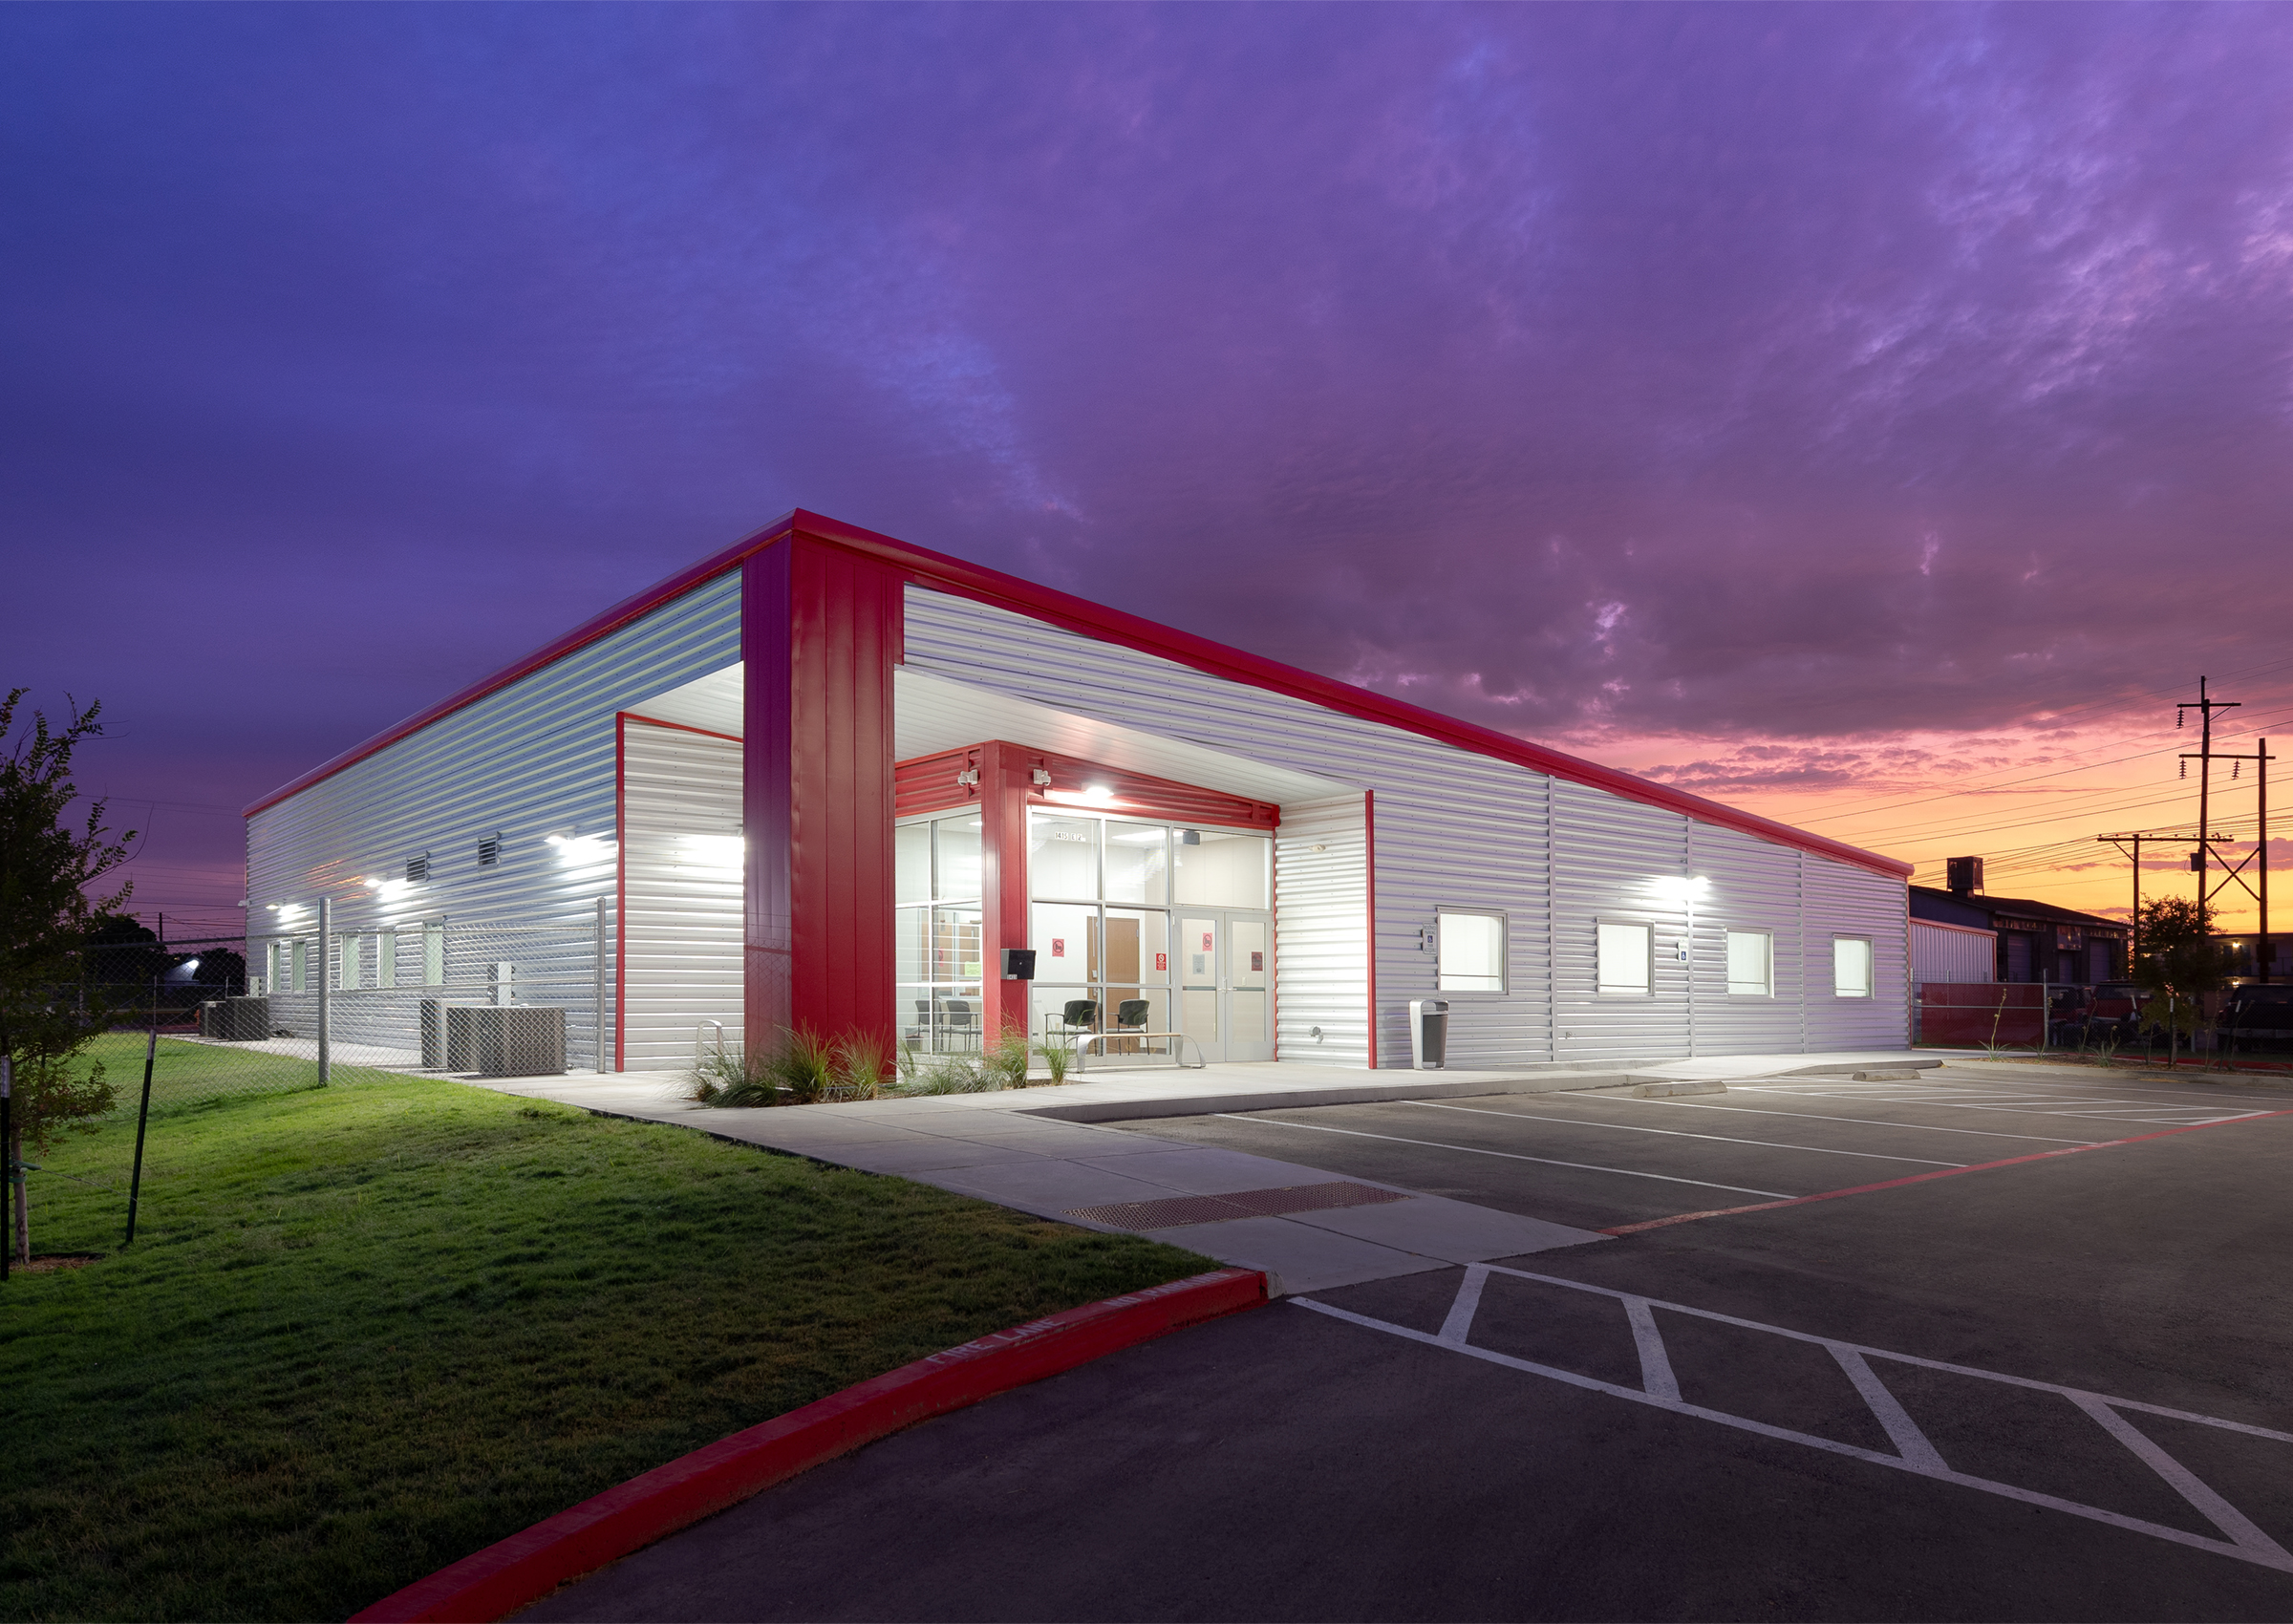 West Texas Opportunities Office Building